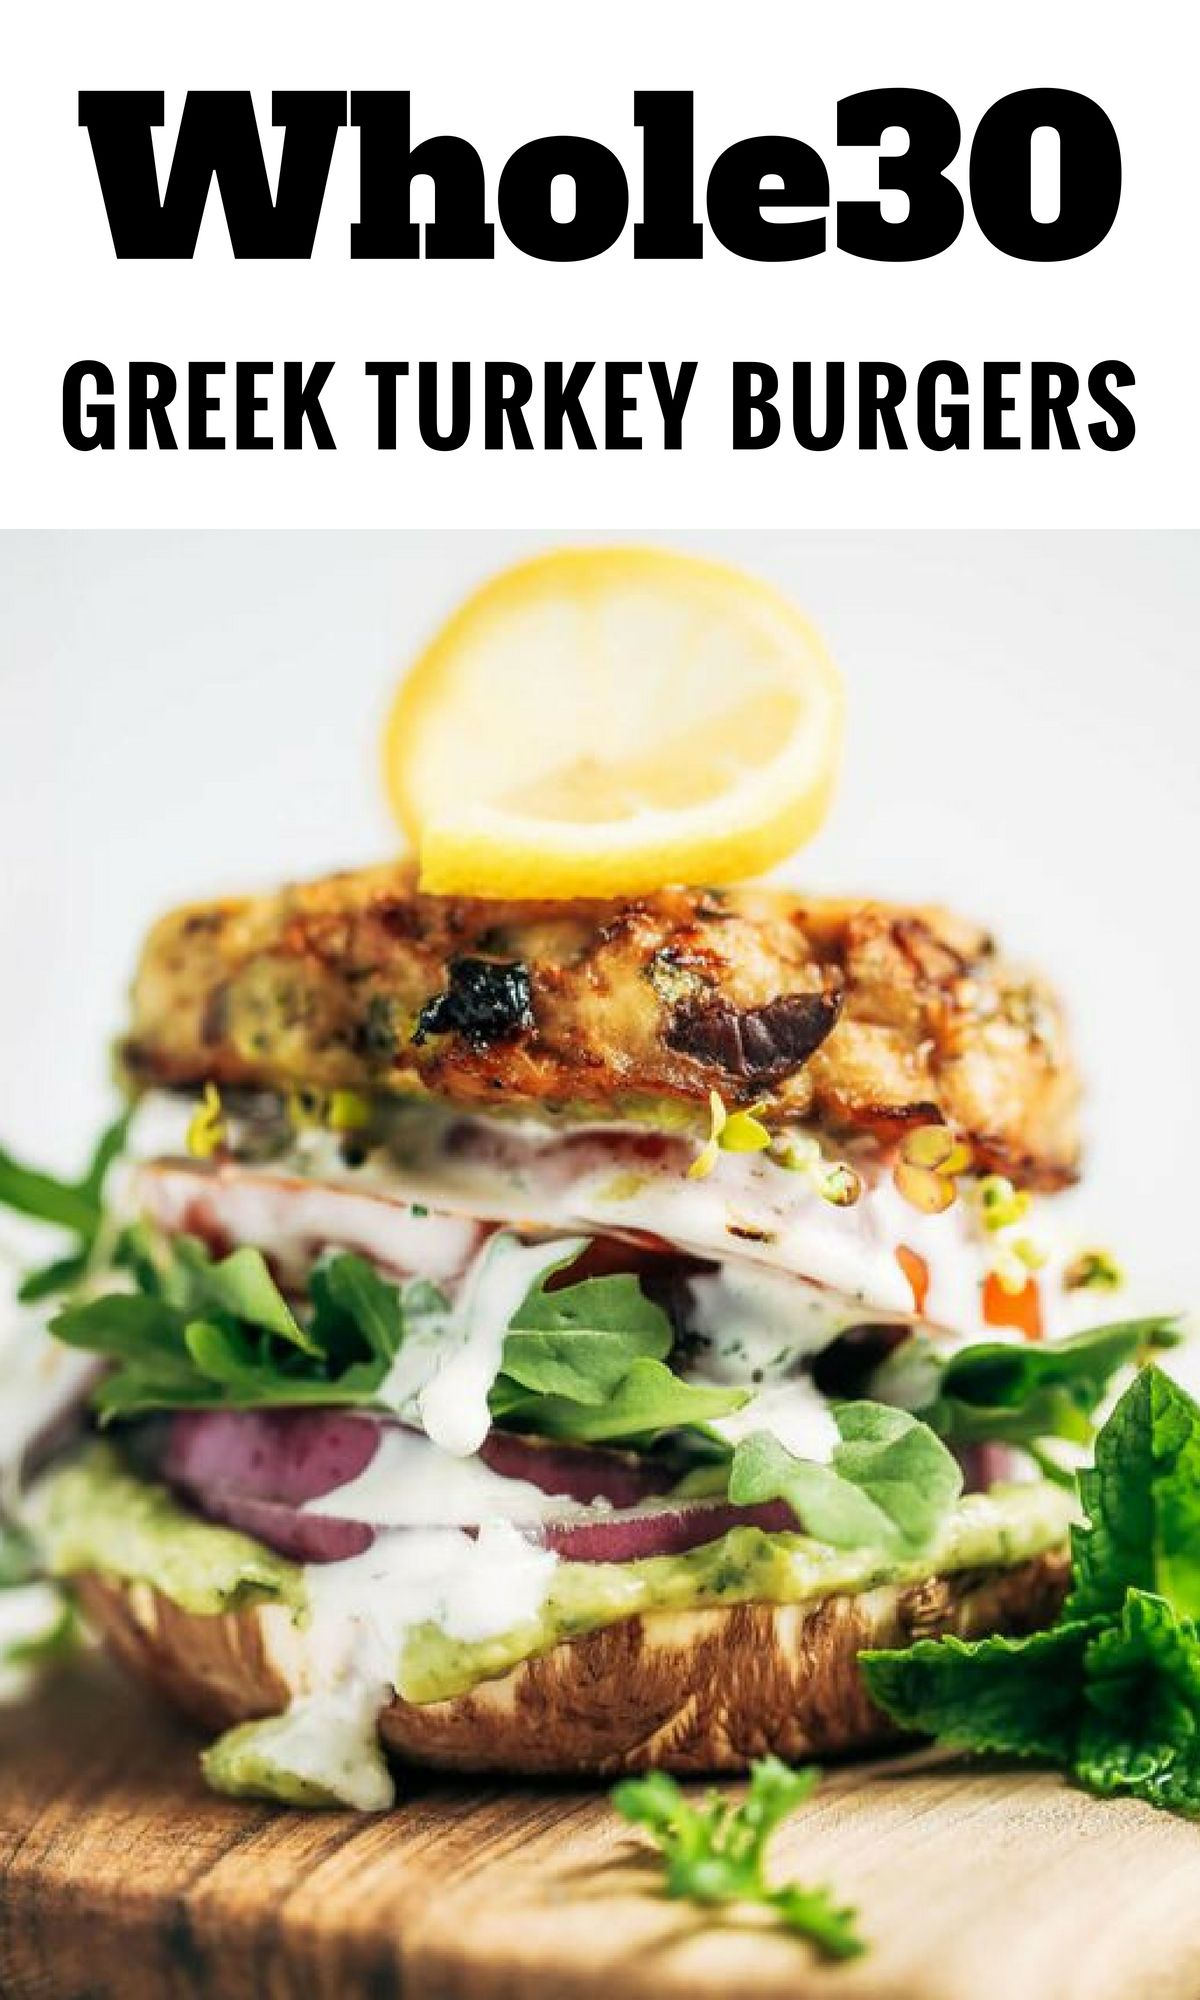 Whole30 Greek Turkey Burgers With Mint Avocado Sauce Recipe